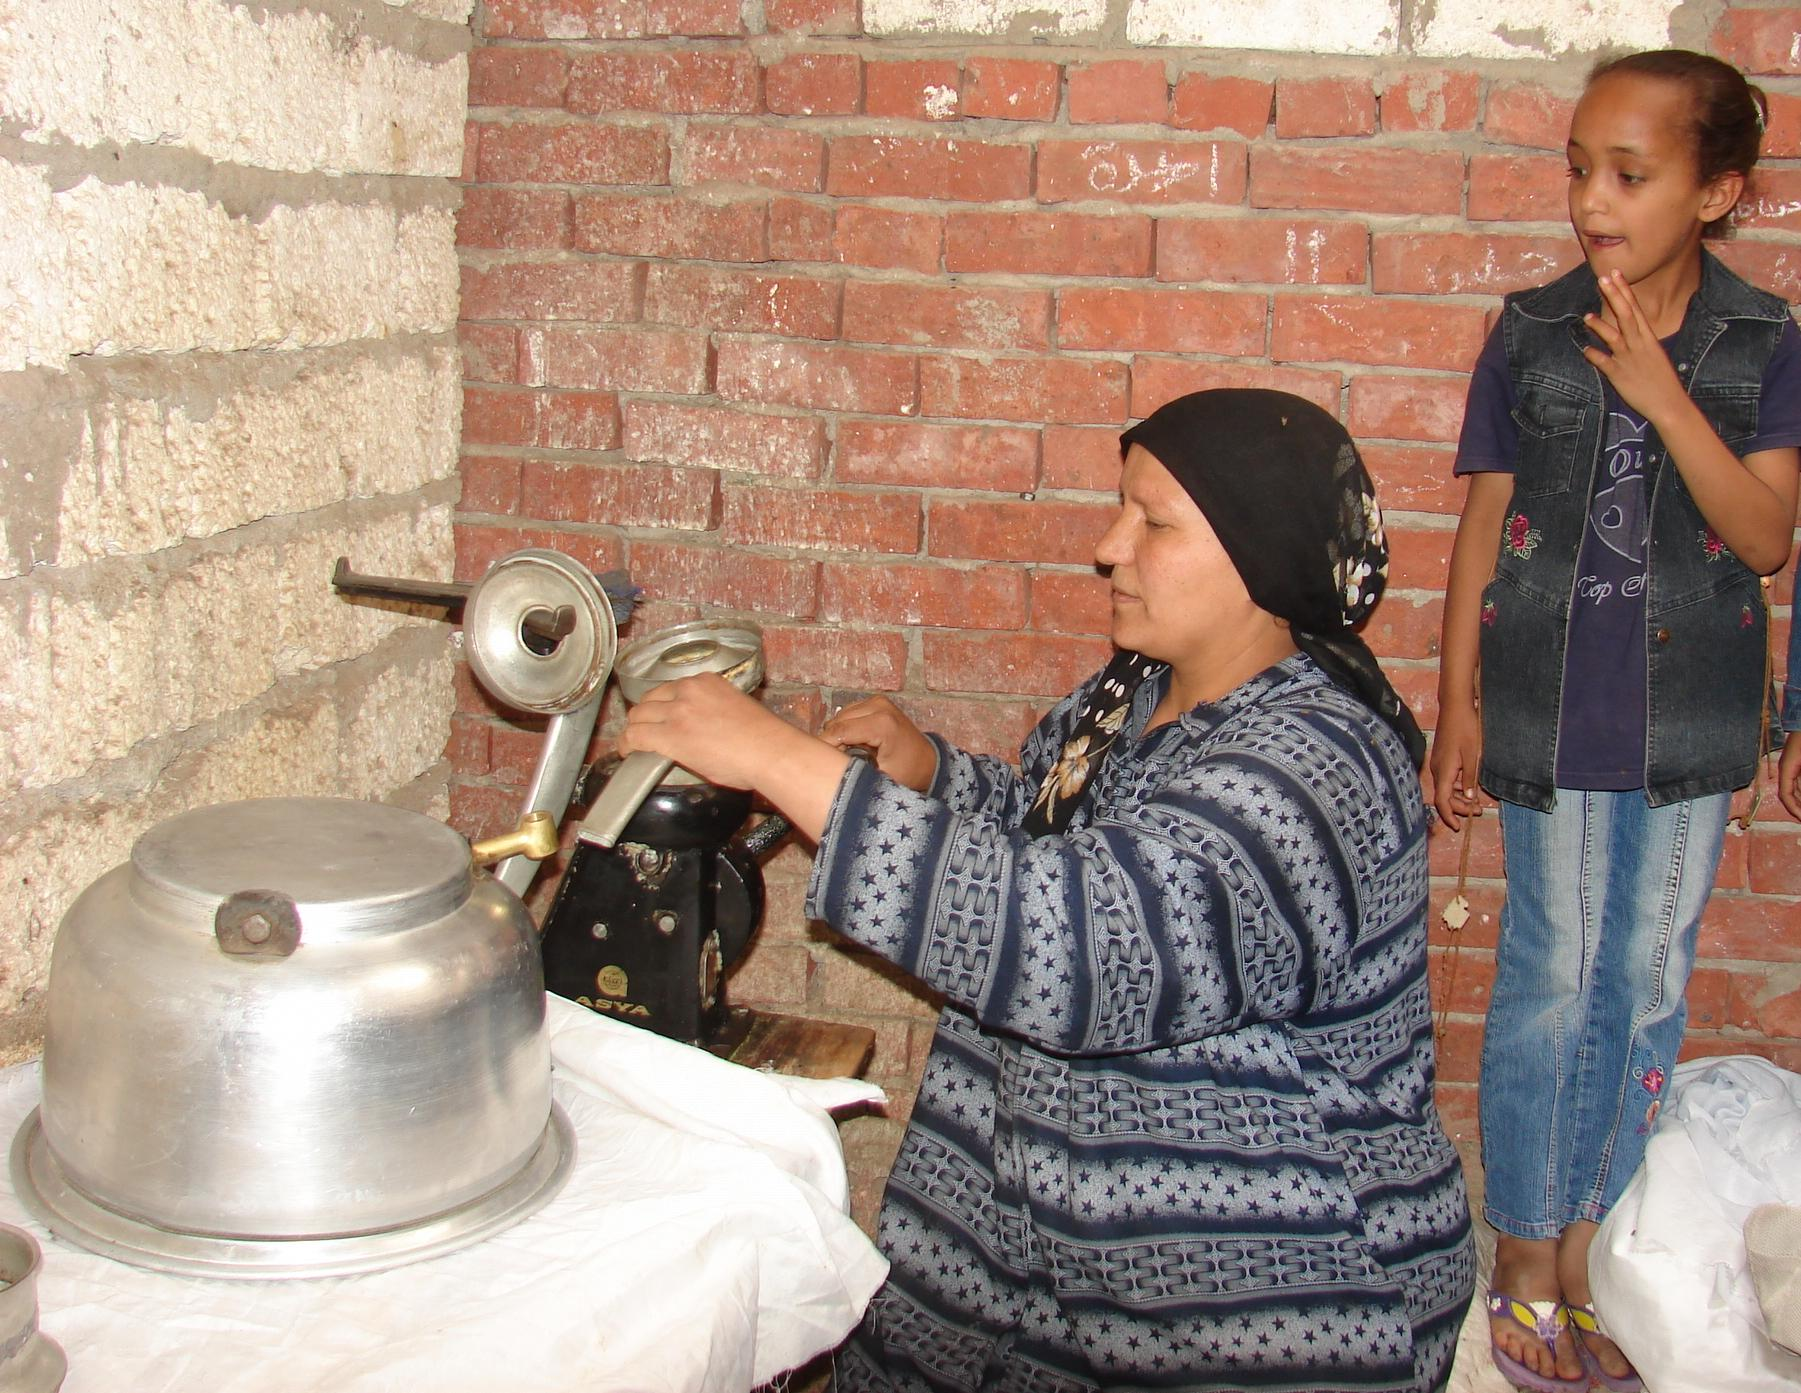 Image of Egyptian woman working while her young daughter looks on.